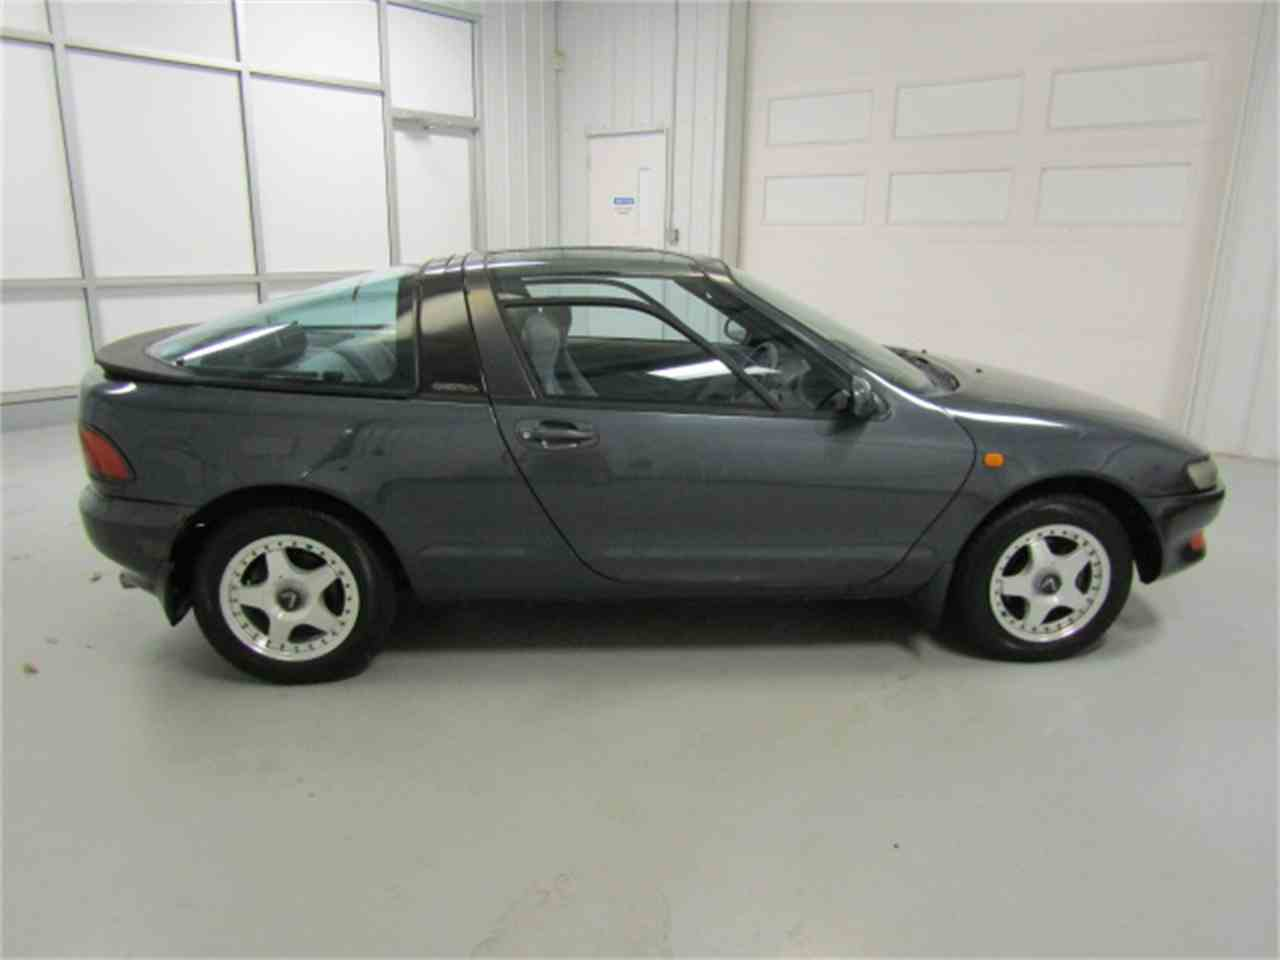 Large Picture of 1990 Toyota Sera located in Christiansburg Virginia Offered by Duncan Imports & Classic Cars - JLBZ